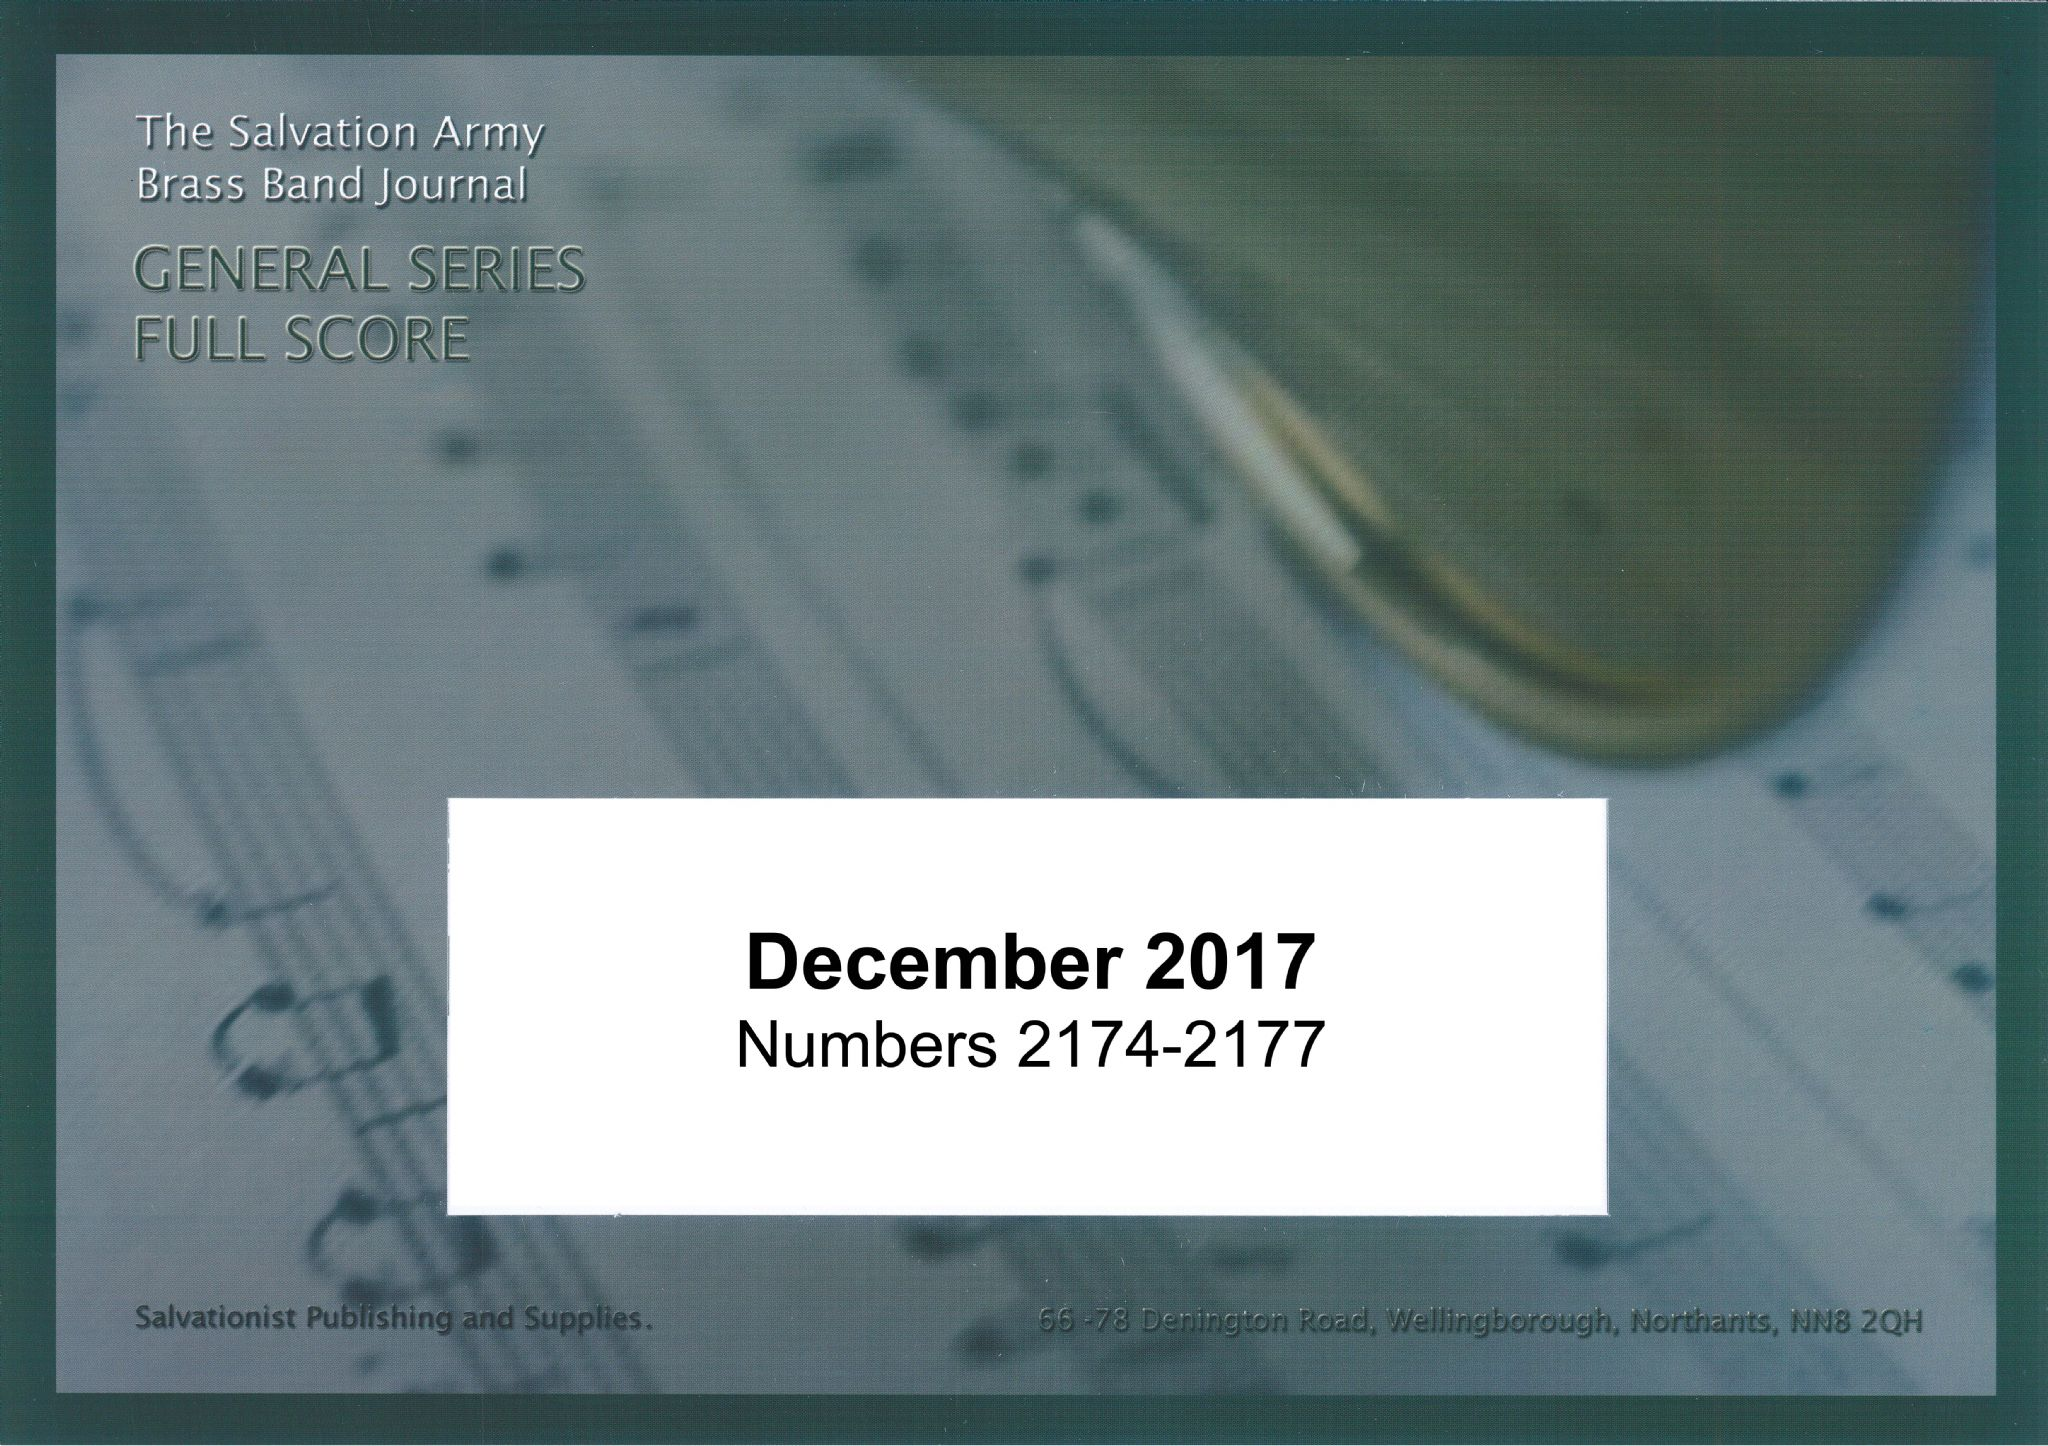 General Series Band Journal December 2017 Numbers 2174-2177